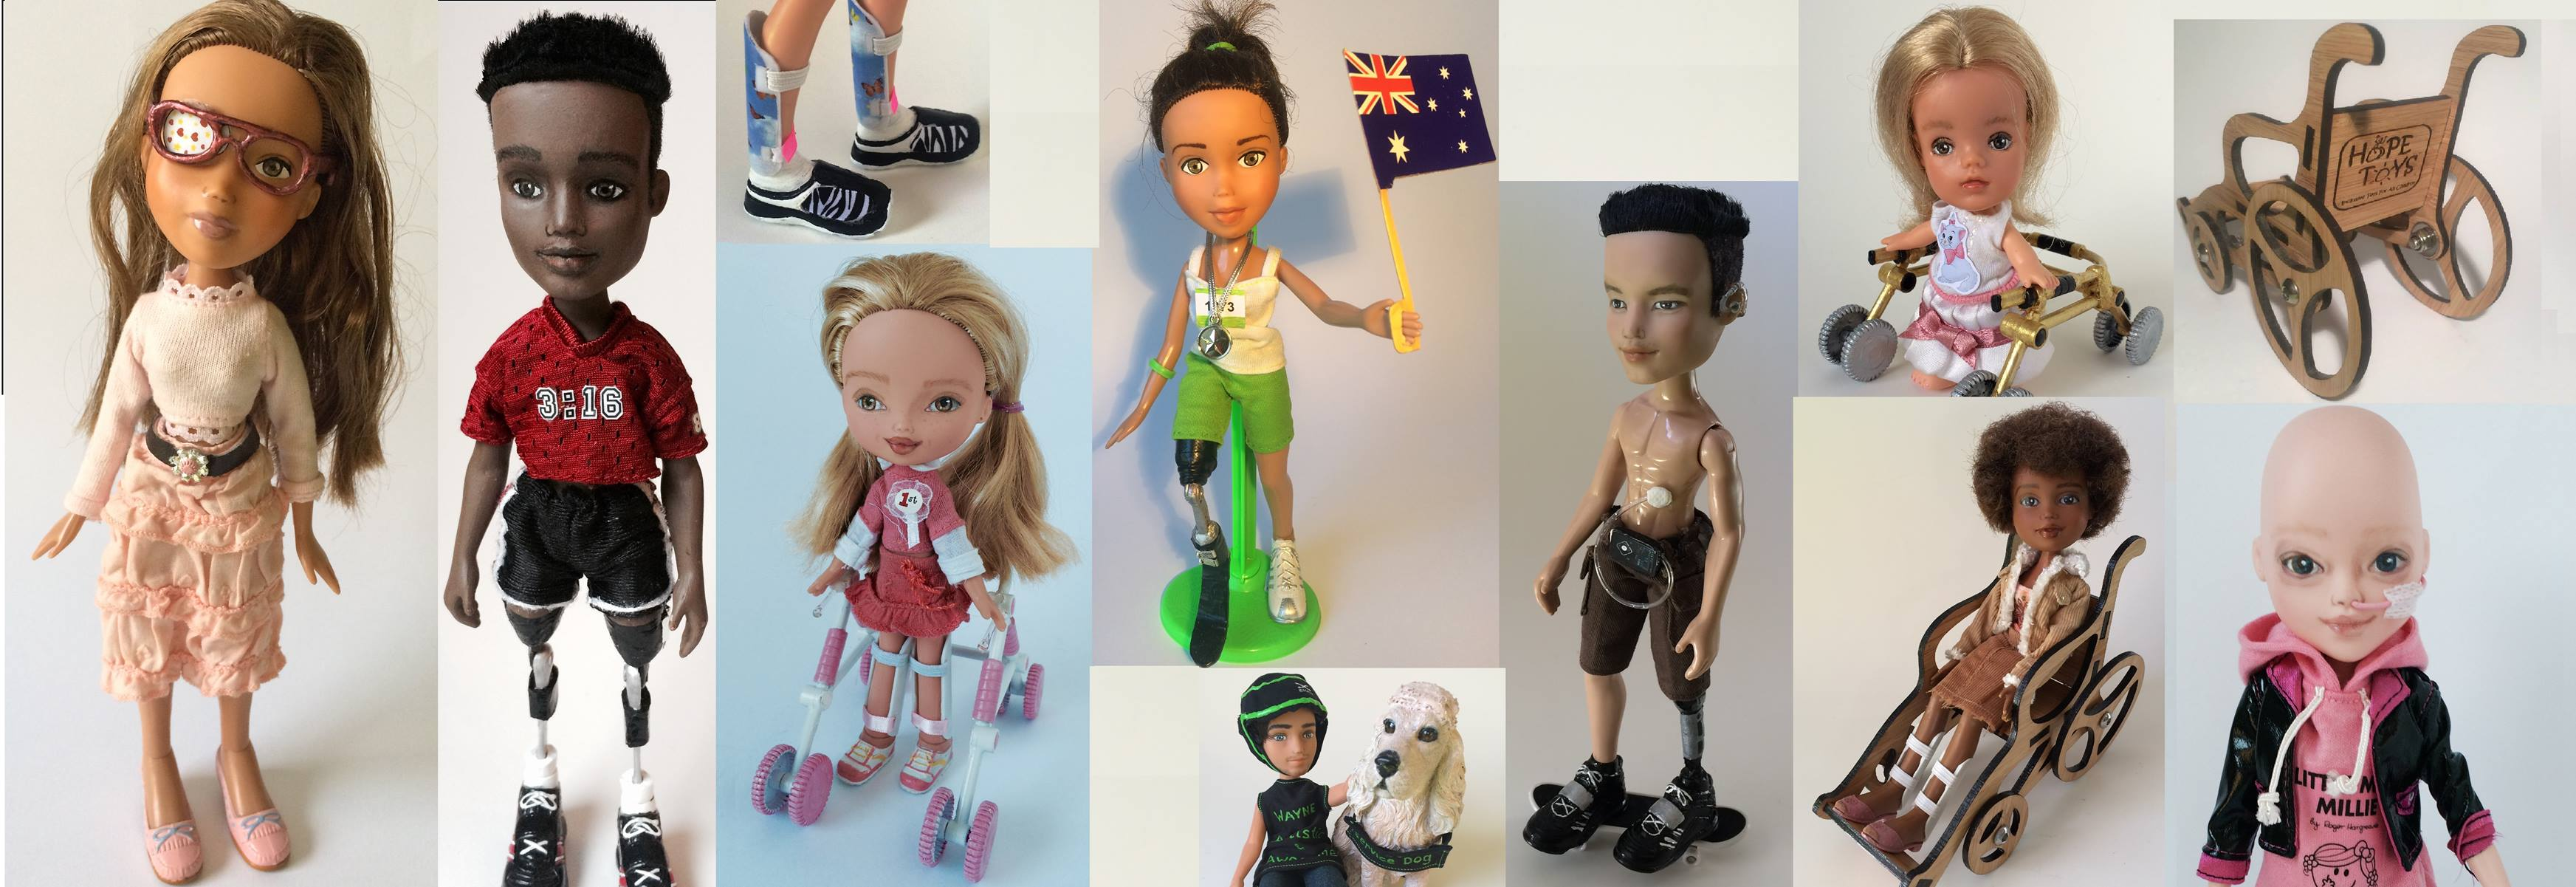 Hope Toys' inclusive toy range (Image credit: Hope Toys)